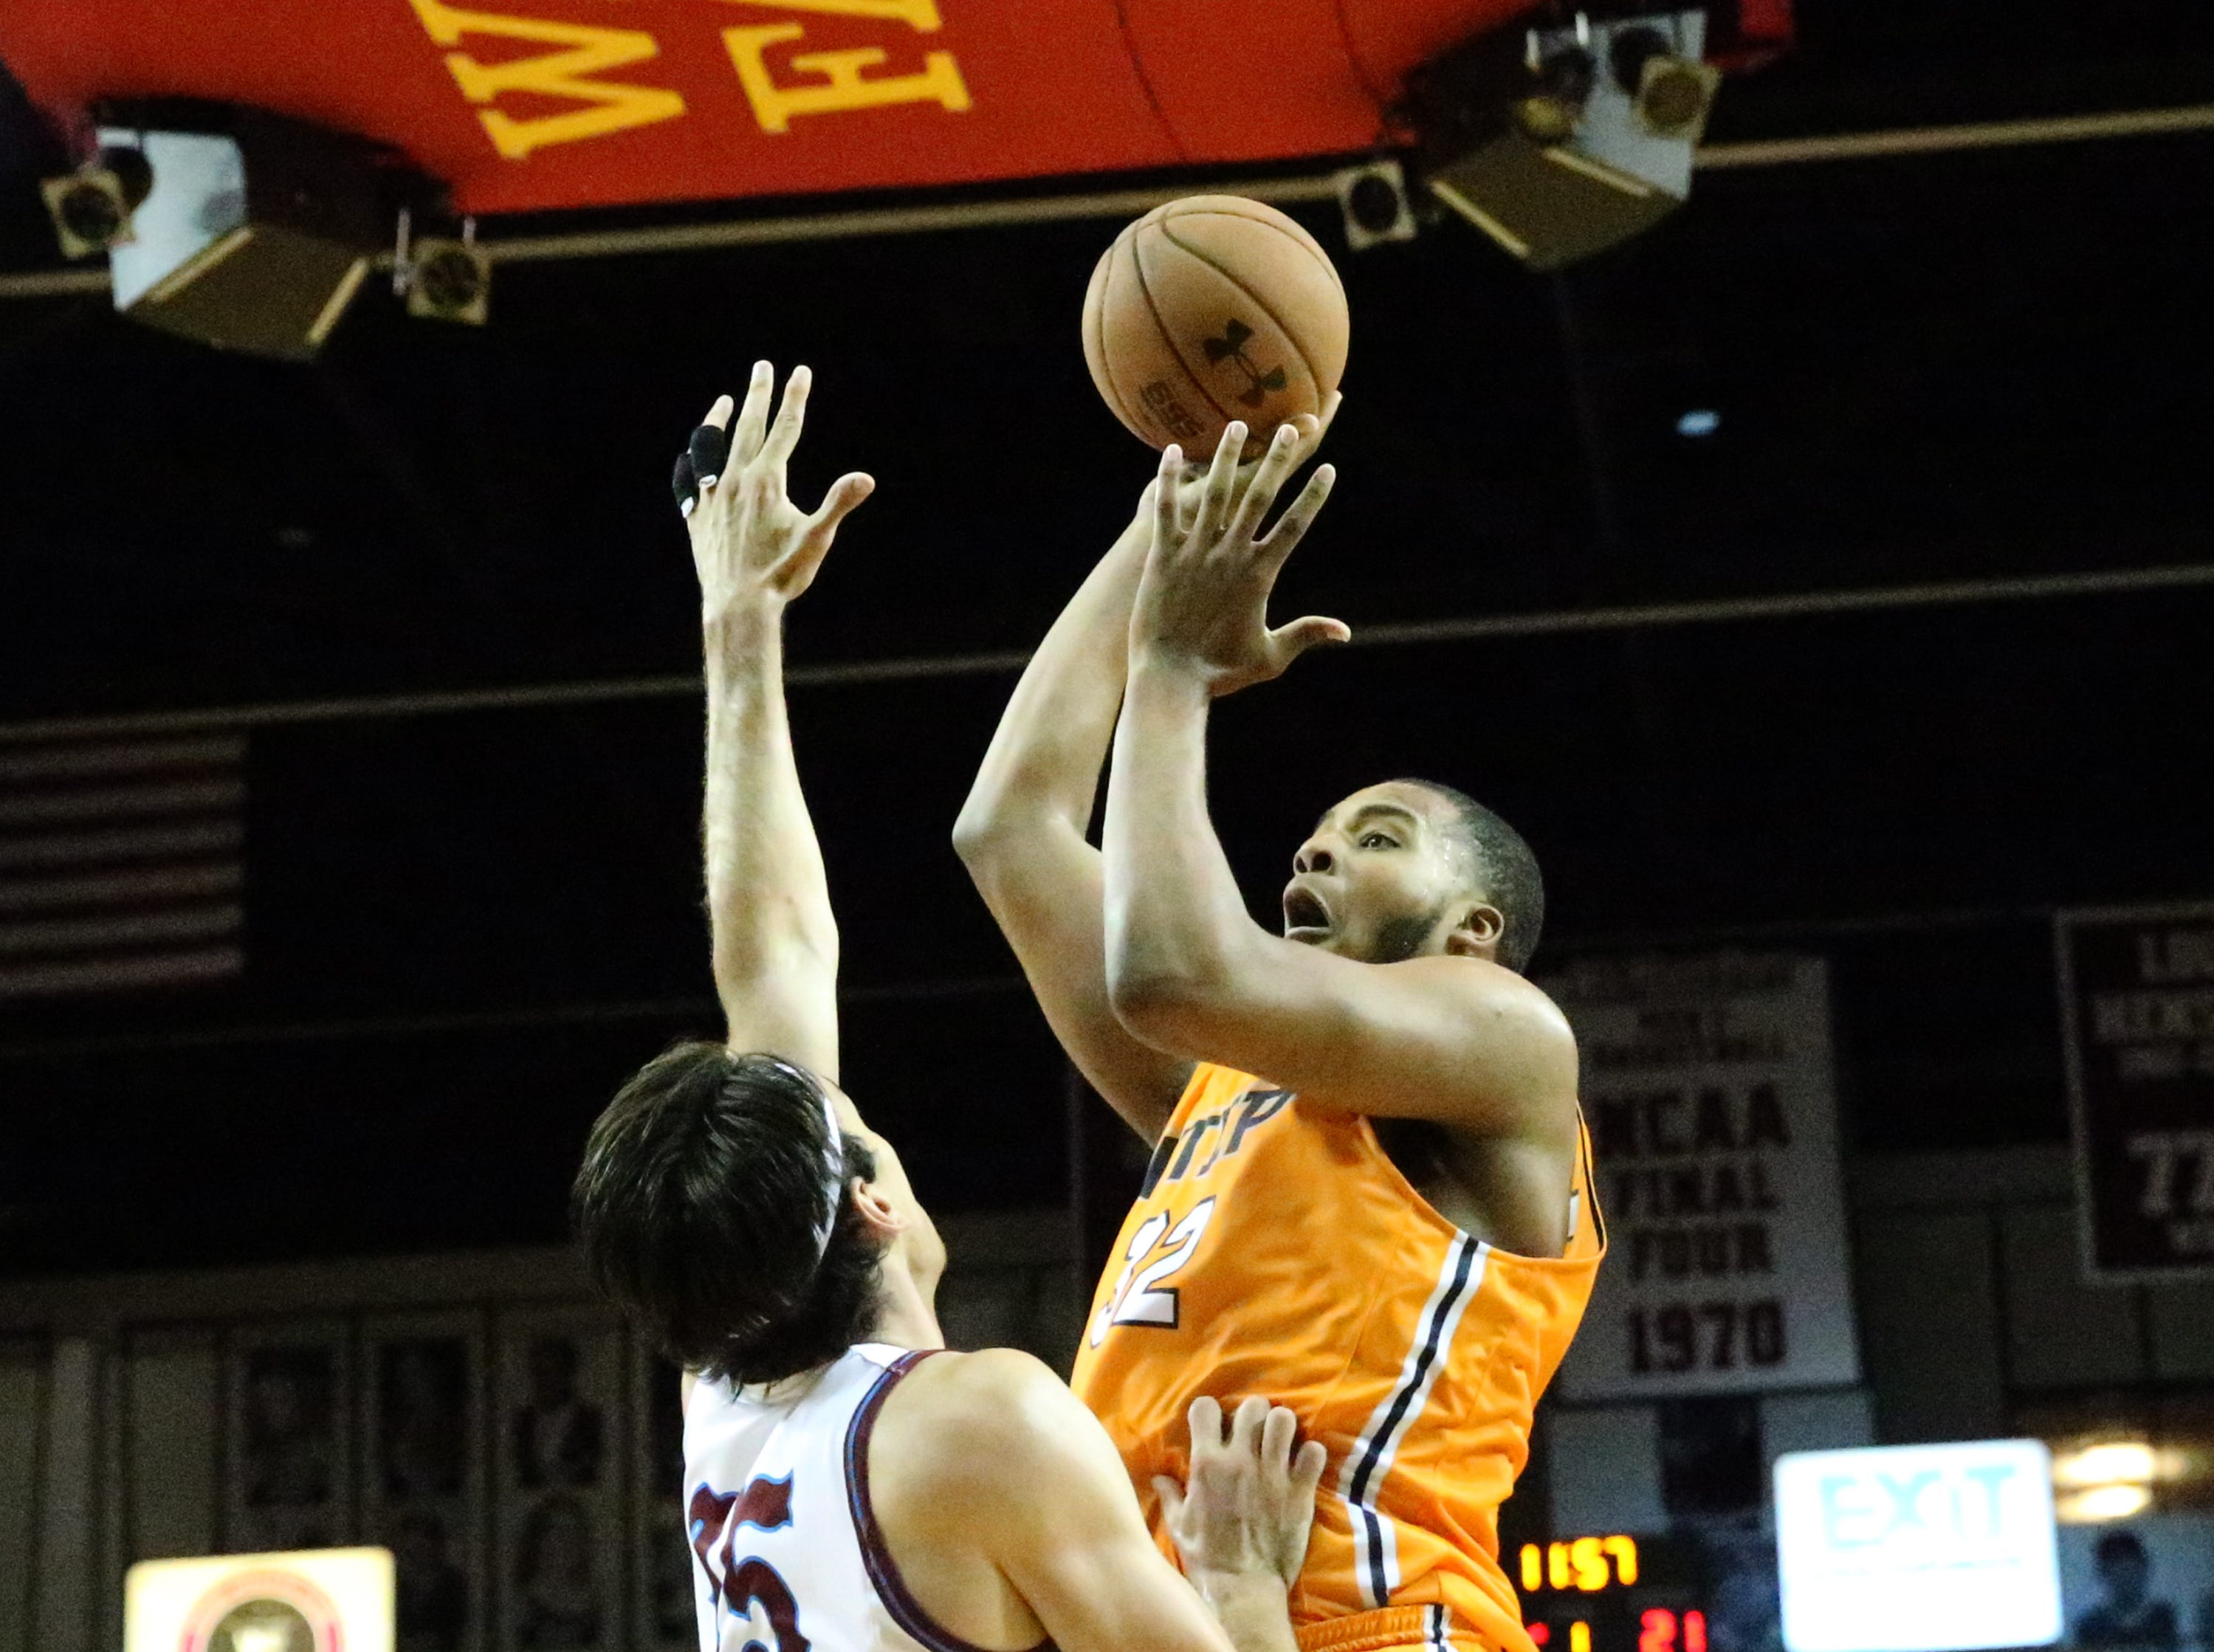 UTEP is overtaken by NMSU in the second half, loses 96-69 Friday night in the Pan American Center..